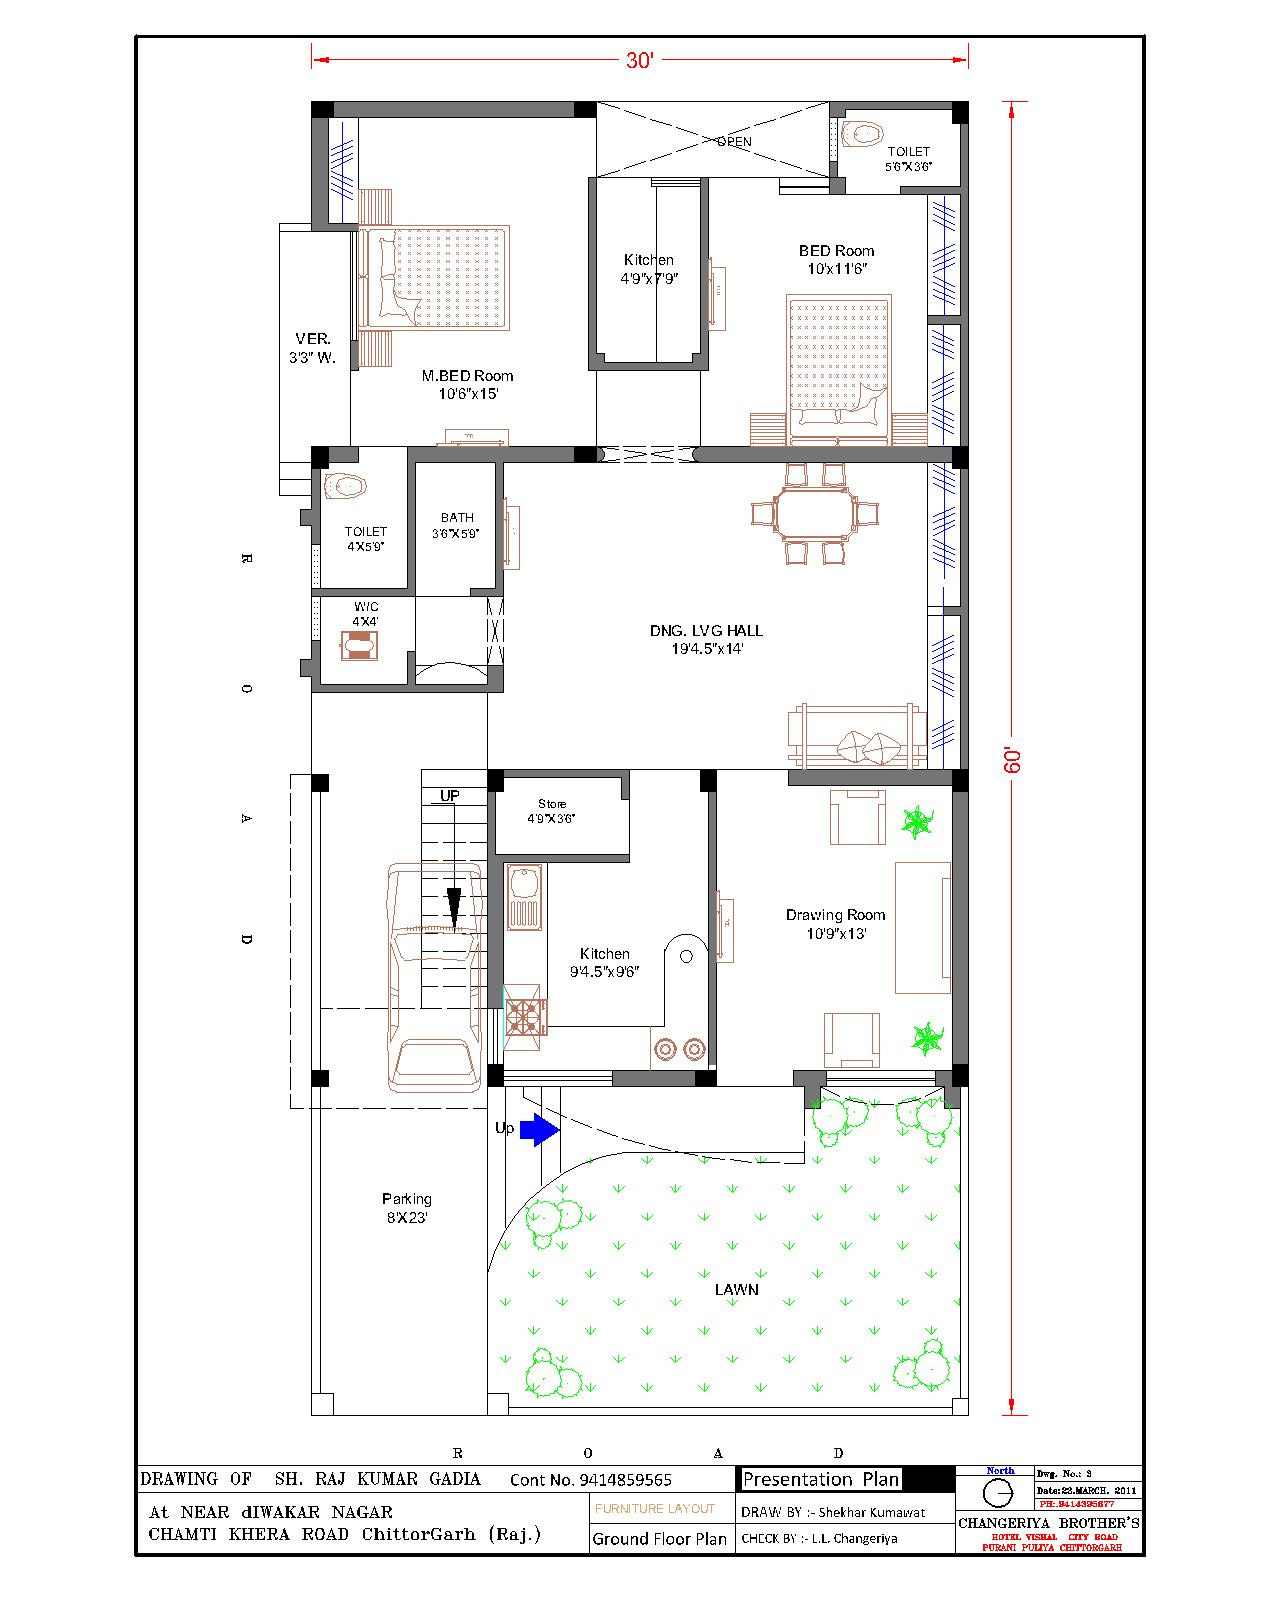 House Plans software Free Download New Aef6f23 India House Plans software Free Download